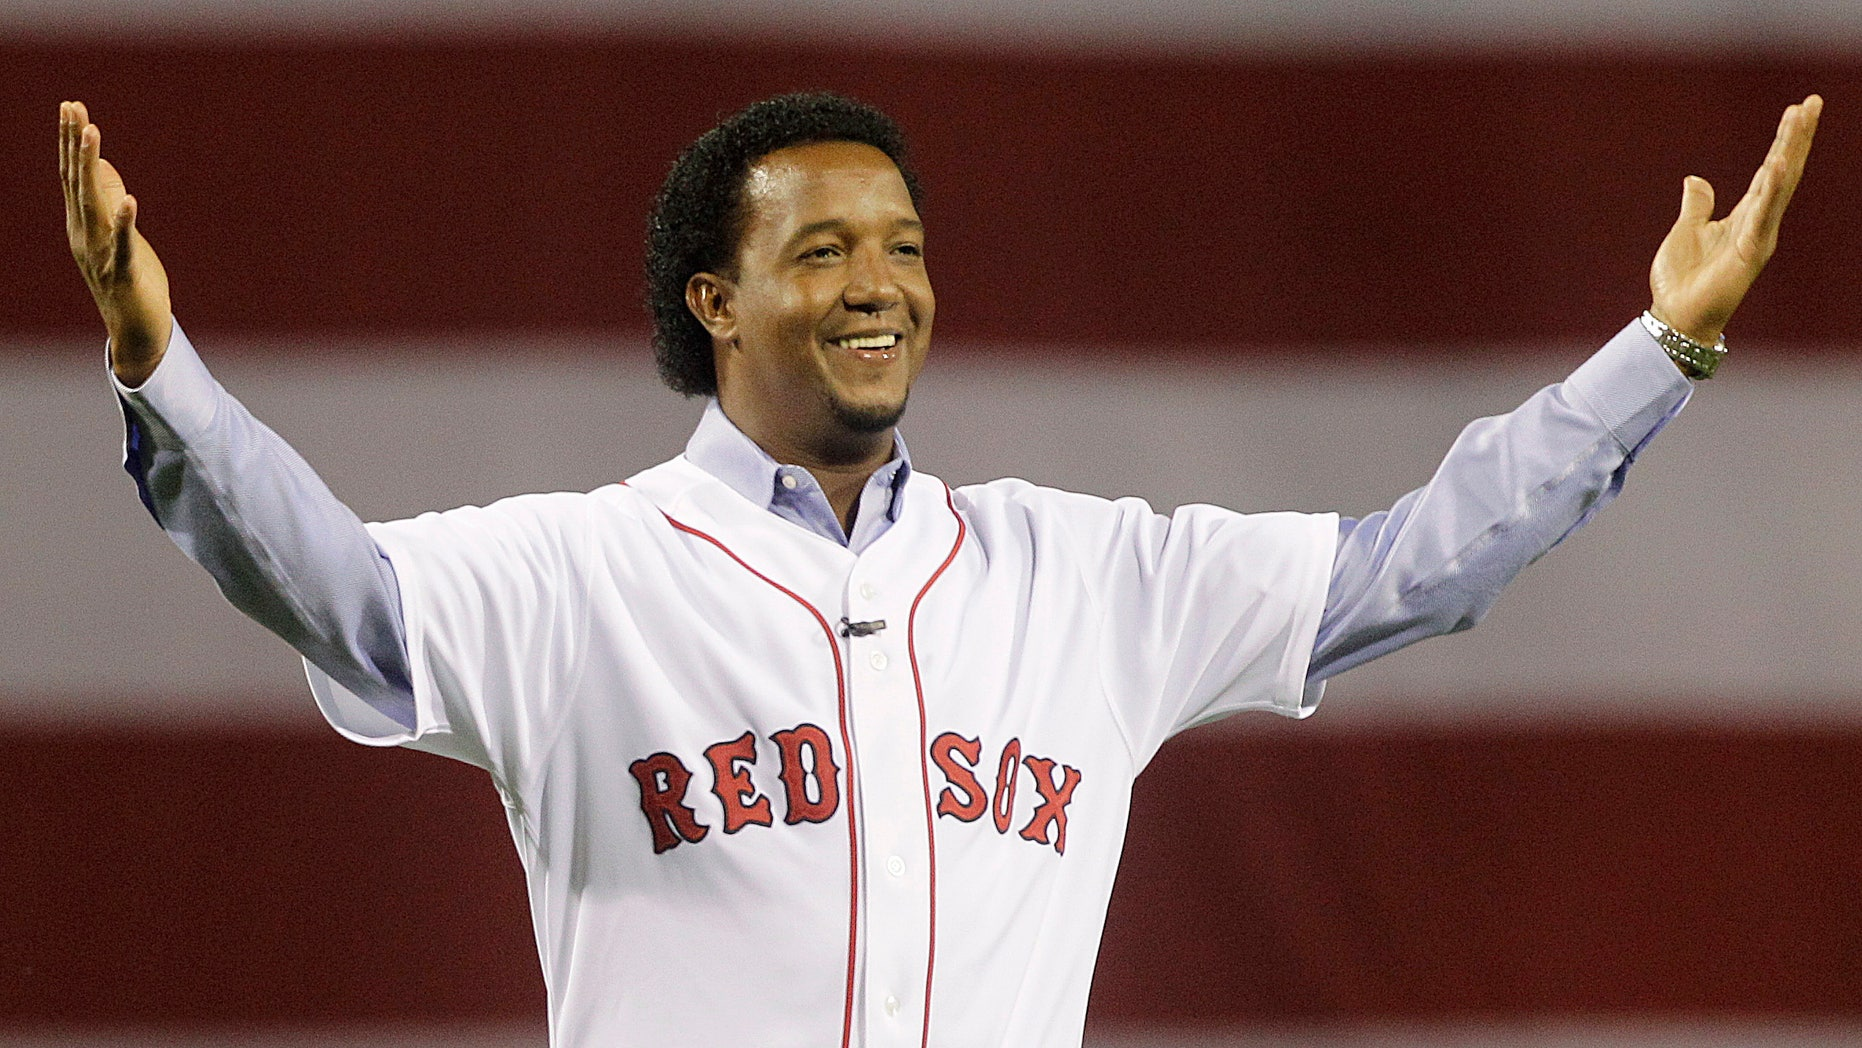 Pedro Martinez greets the crowd in an April 2010 file photo.